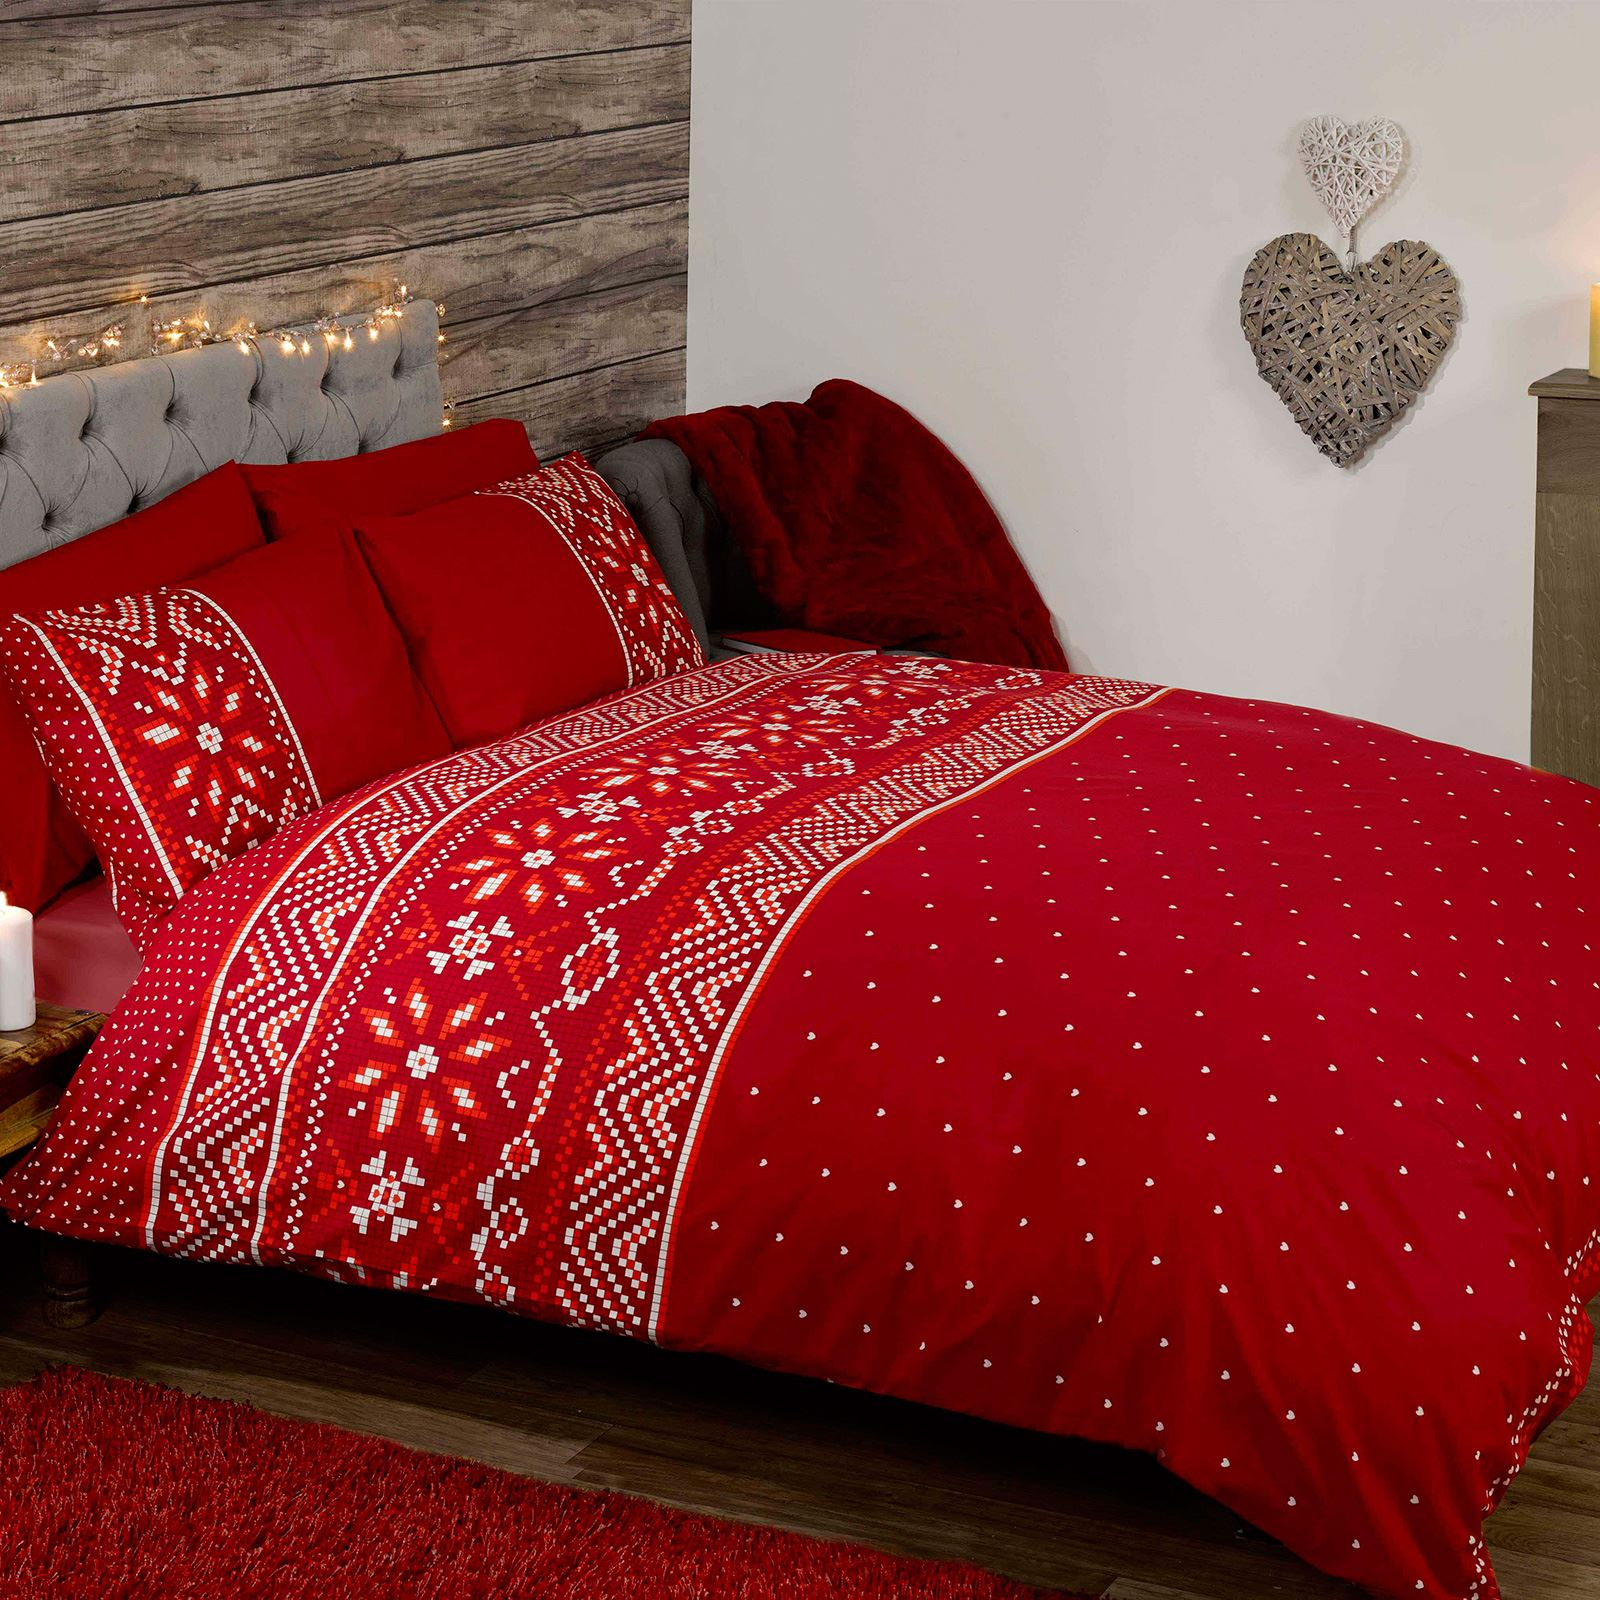 Beddinginn provides a rather convenient online shopping platform for home decor, if you need Chrismas bedding, here is just where you are looking for,we supply whole assortment of Christmas bedding,comforter sets and most comfortable Christmas bedding for baby and kids.